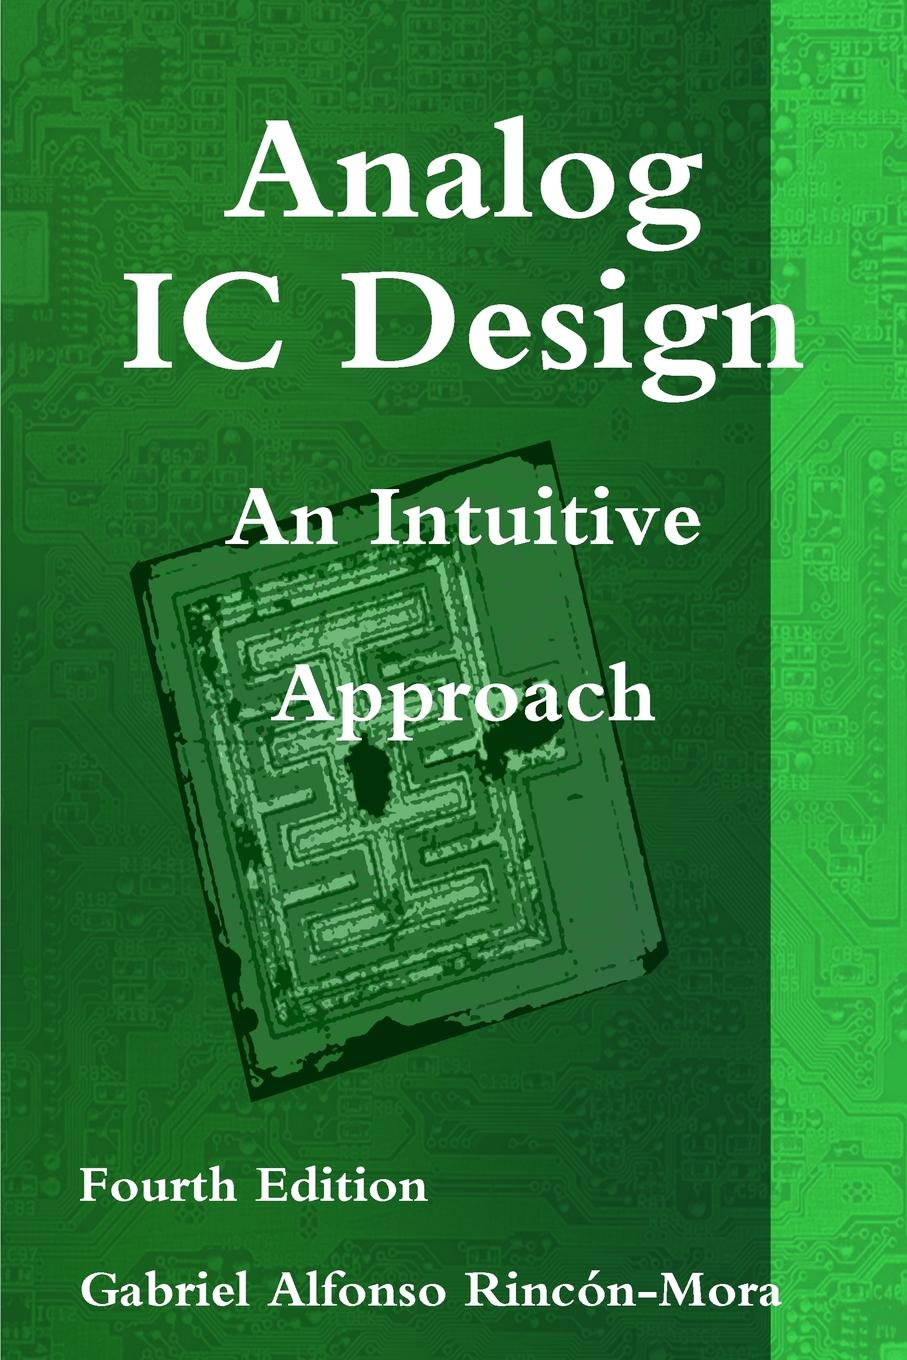 Ph.D. Gabriel Alfonso Rincón-Mora Analog IC Design - An Intuitive Approach steven voldman h esd analog circuits and design